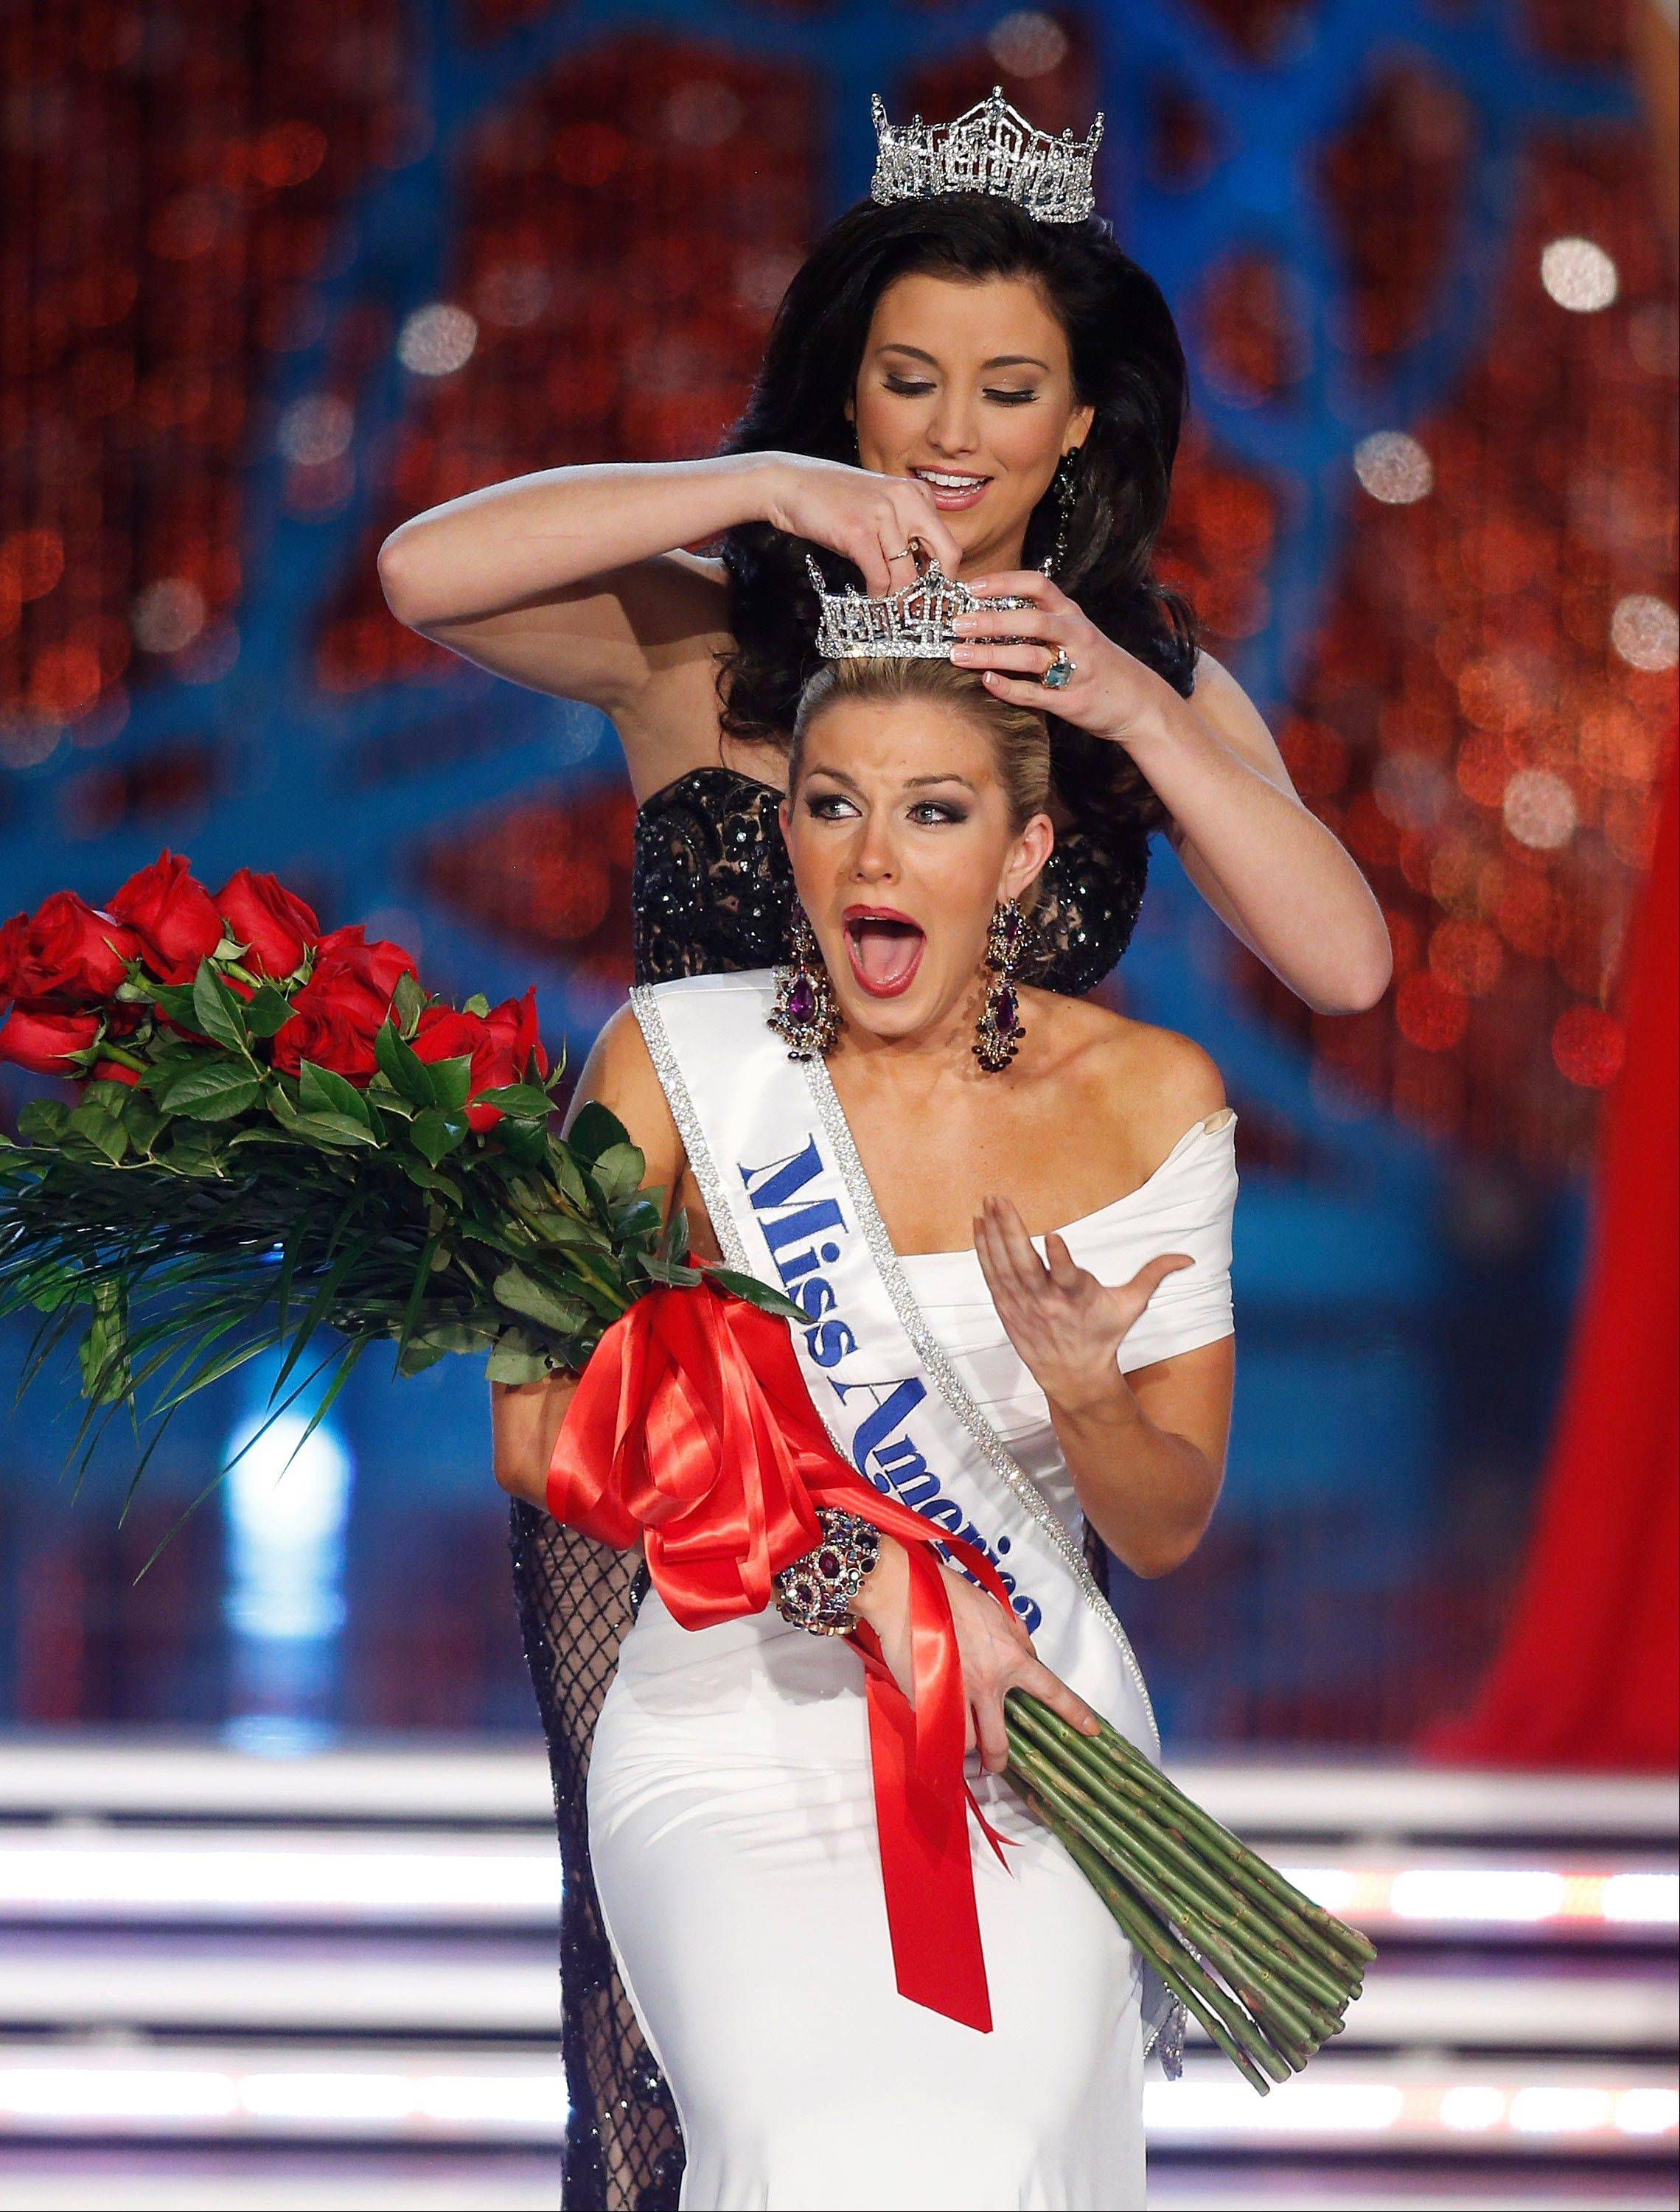 Miss New York Mallory Hagan is crowned Miss America 2013 by Miss America 2012 Laura Kaeppeler on Saturday, Jan. 12, 2013, in Las Vegas.